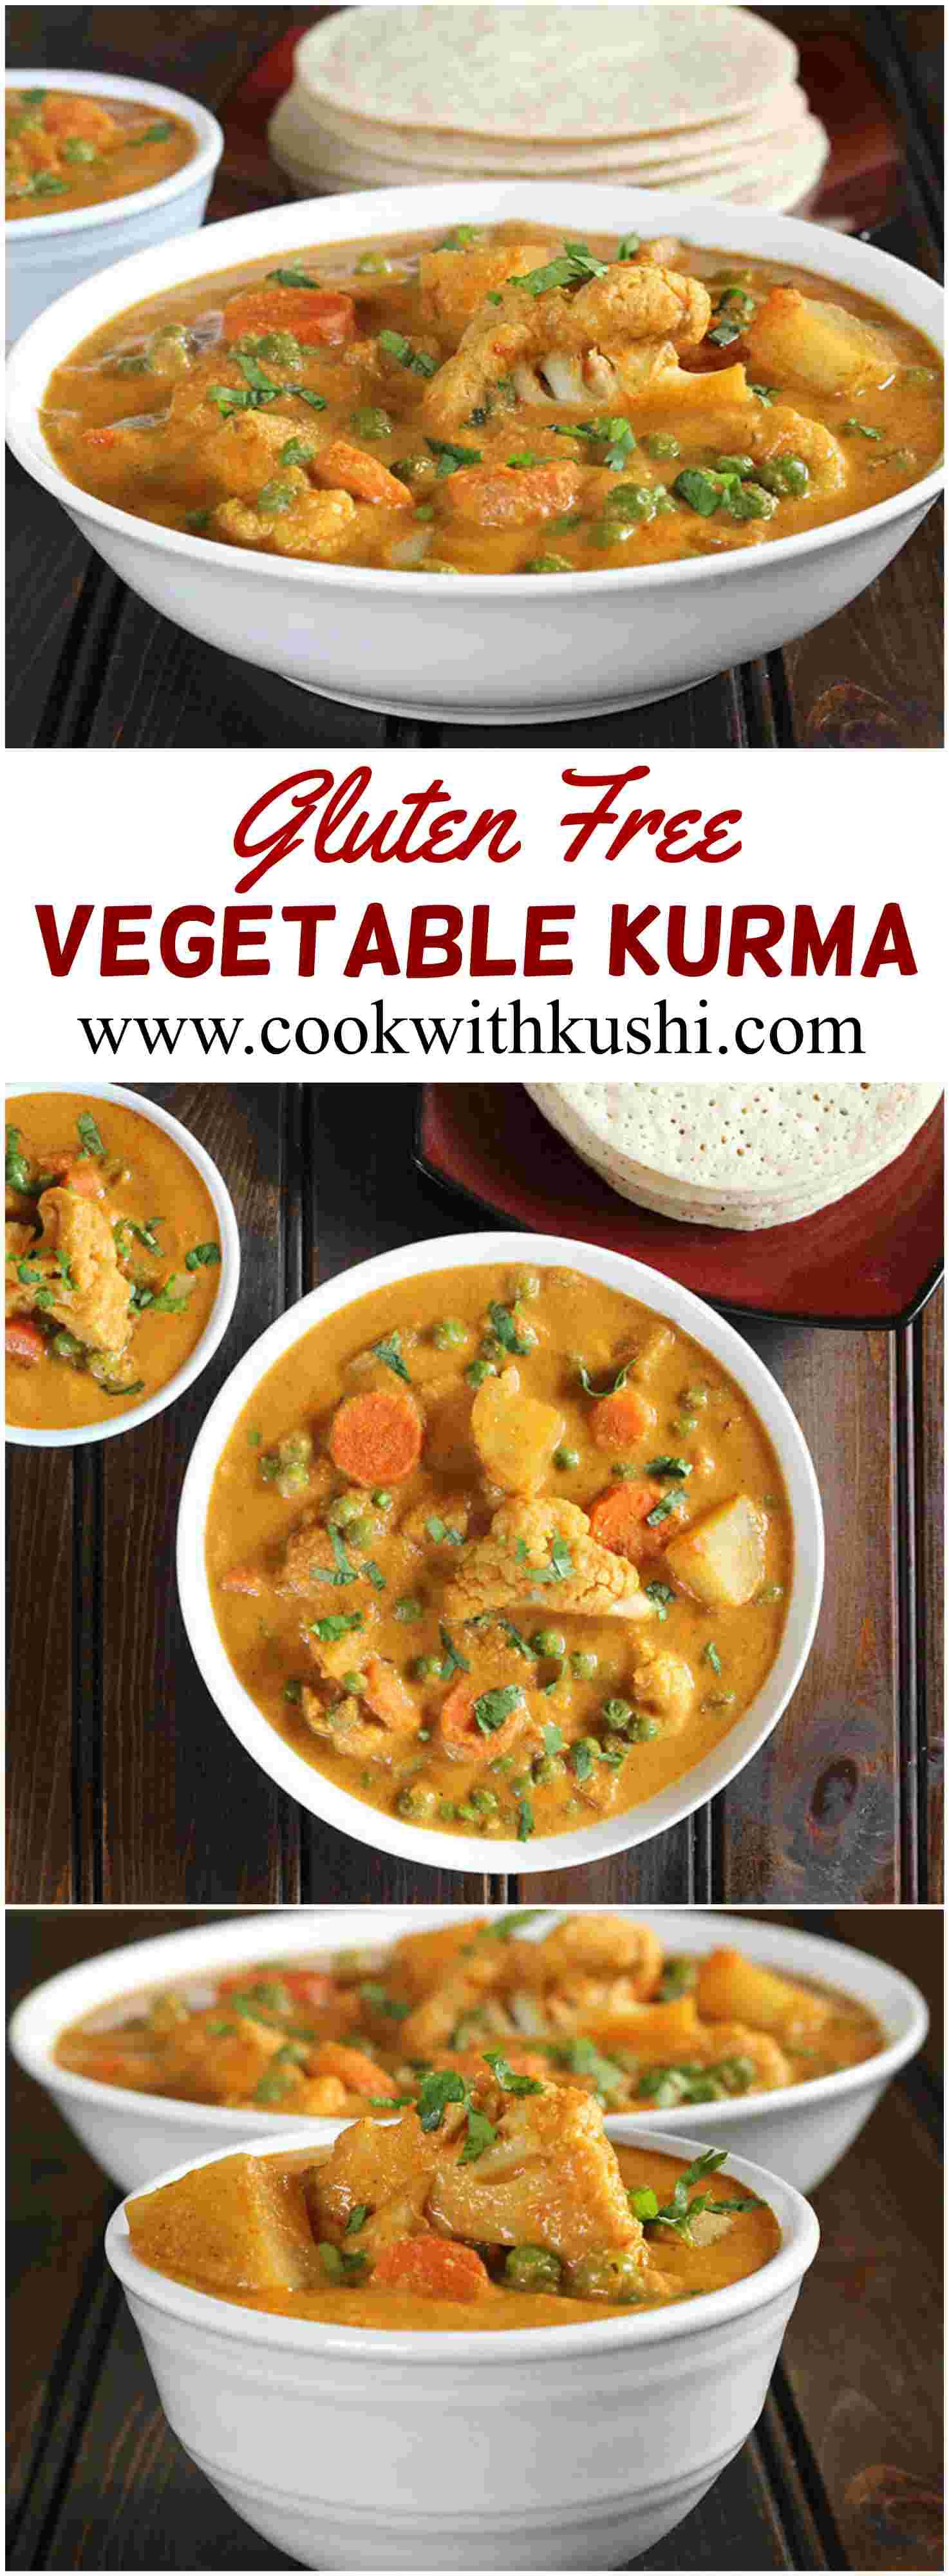 Vegetable Kurma is a spicy and delicious dish prepared using vegetables of your choice and aromatic spices. This dish is a perfect accompaniment for Indian breads like naan, roti or any varitiey of dosa. @bhg @feedfeed @buzzfeedfood #lunch #dinner #vegetable #Indian  #glutenfree #healthy #Kurma #korma #curry #spicy